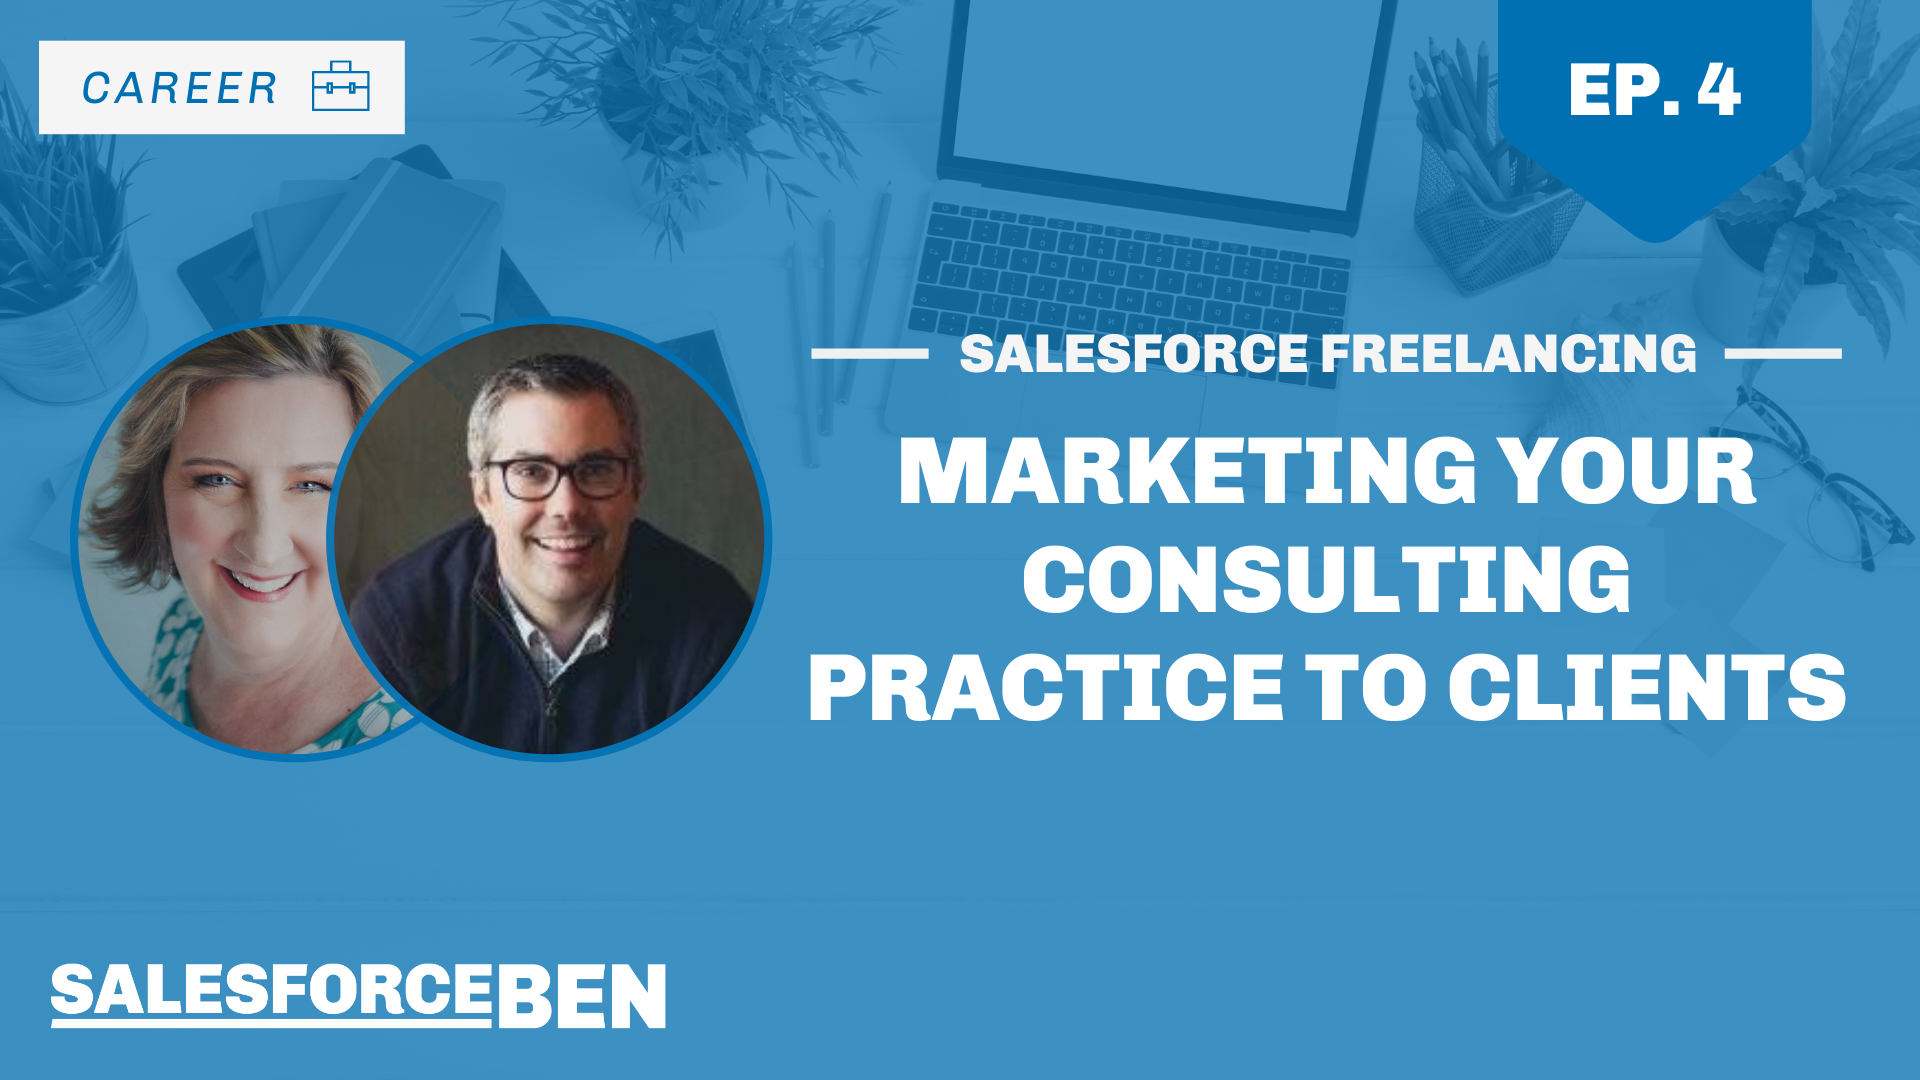 Salesforce Freelancing: Marketing Your Consulting Practice To Clients (Ep. 4)